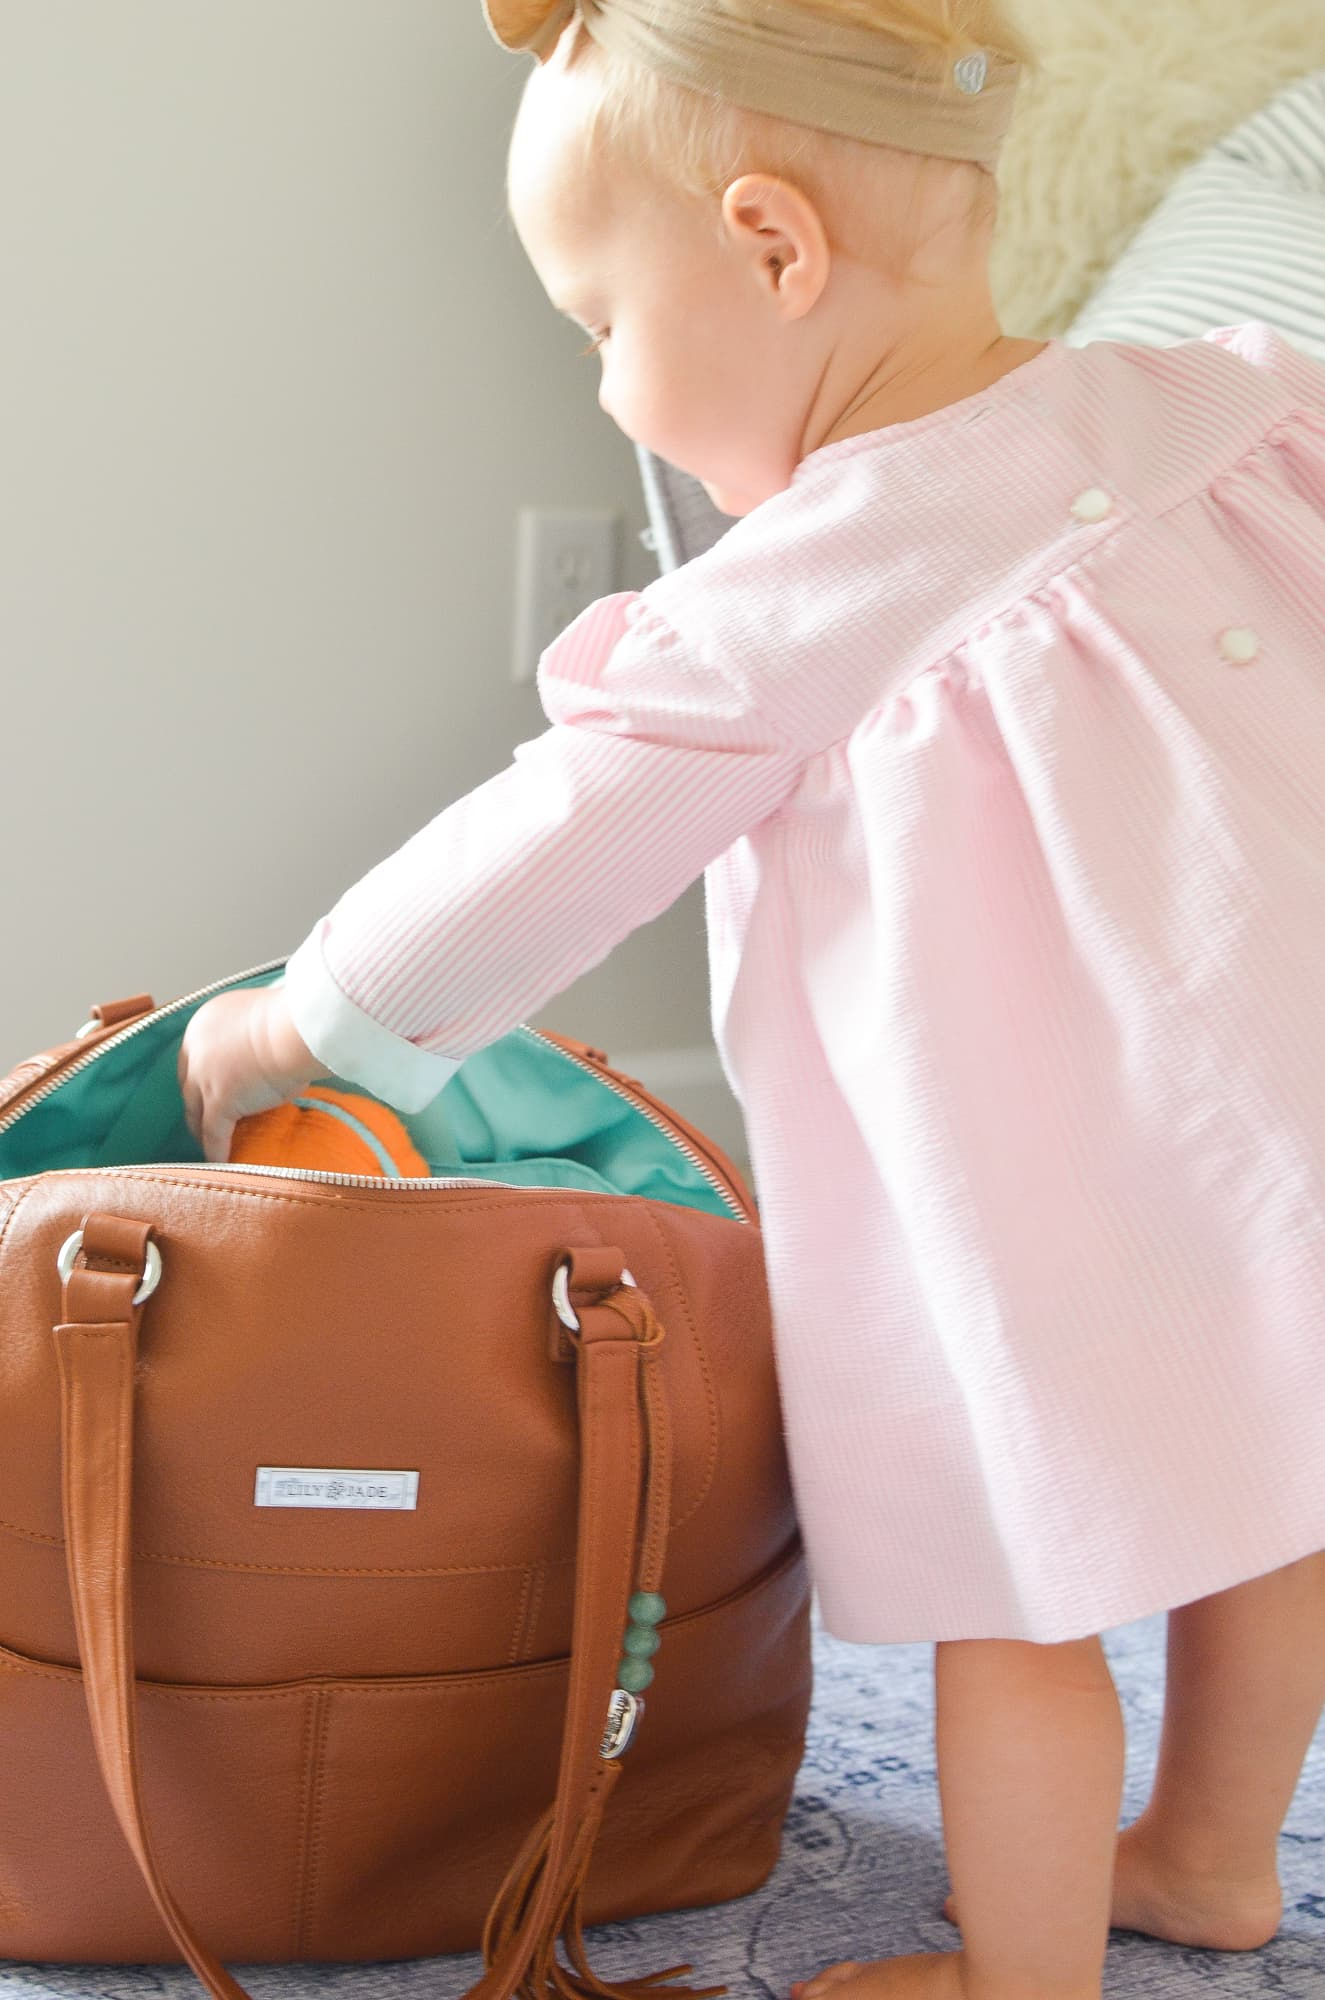 My Search for the Ultimate Diaper Bag | Momma Society